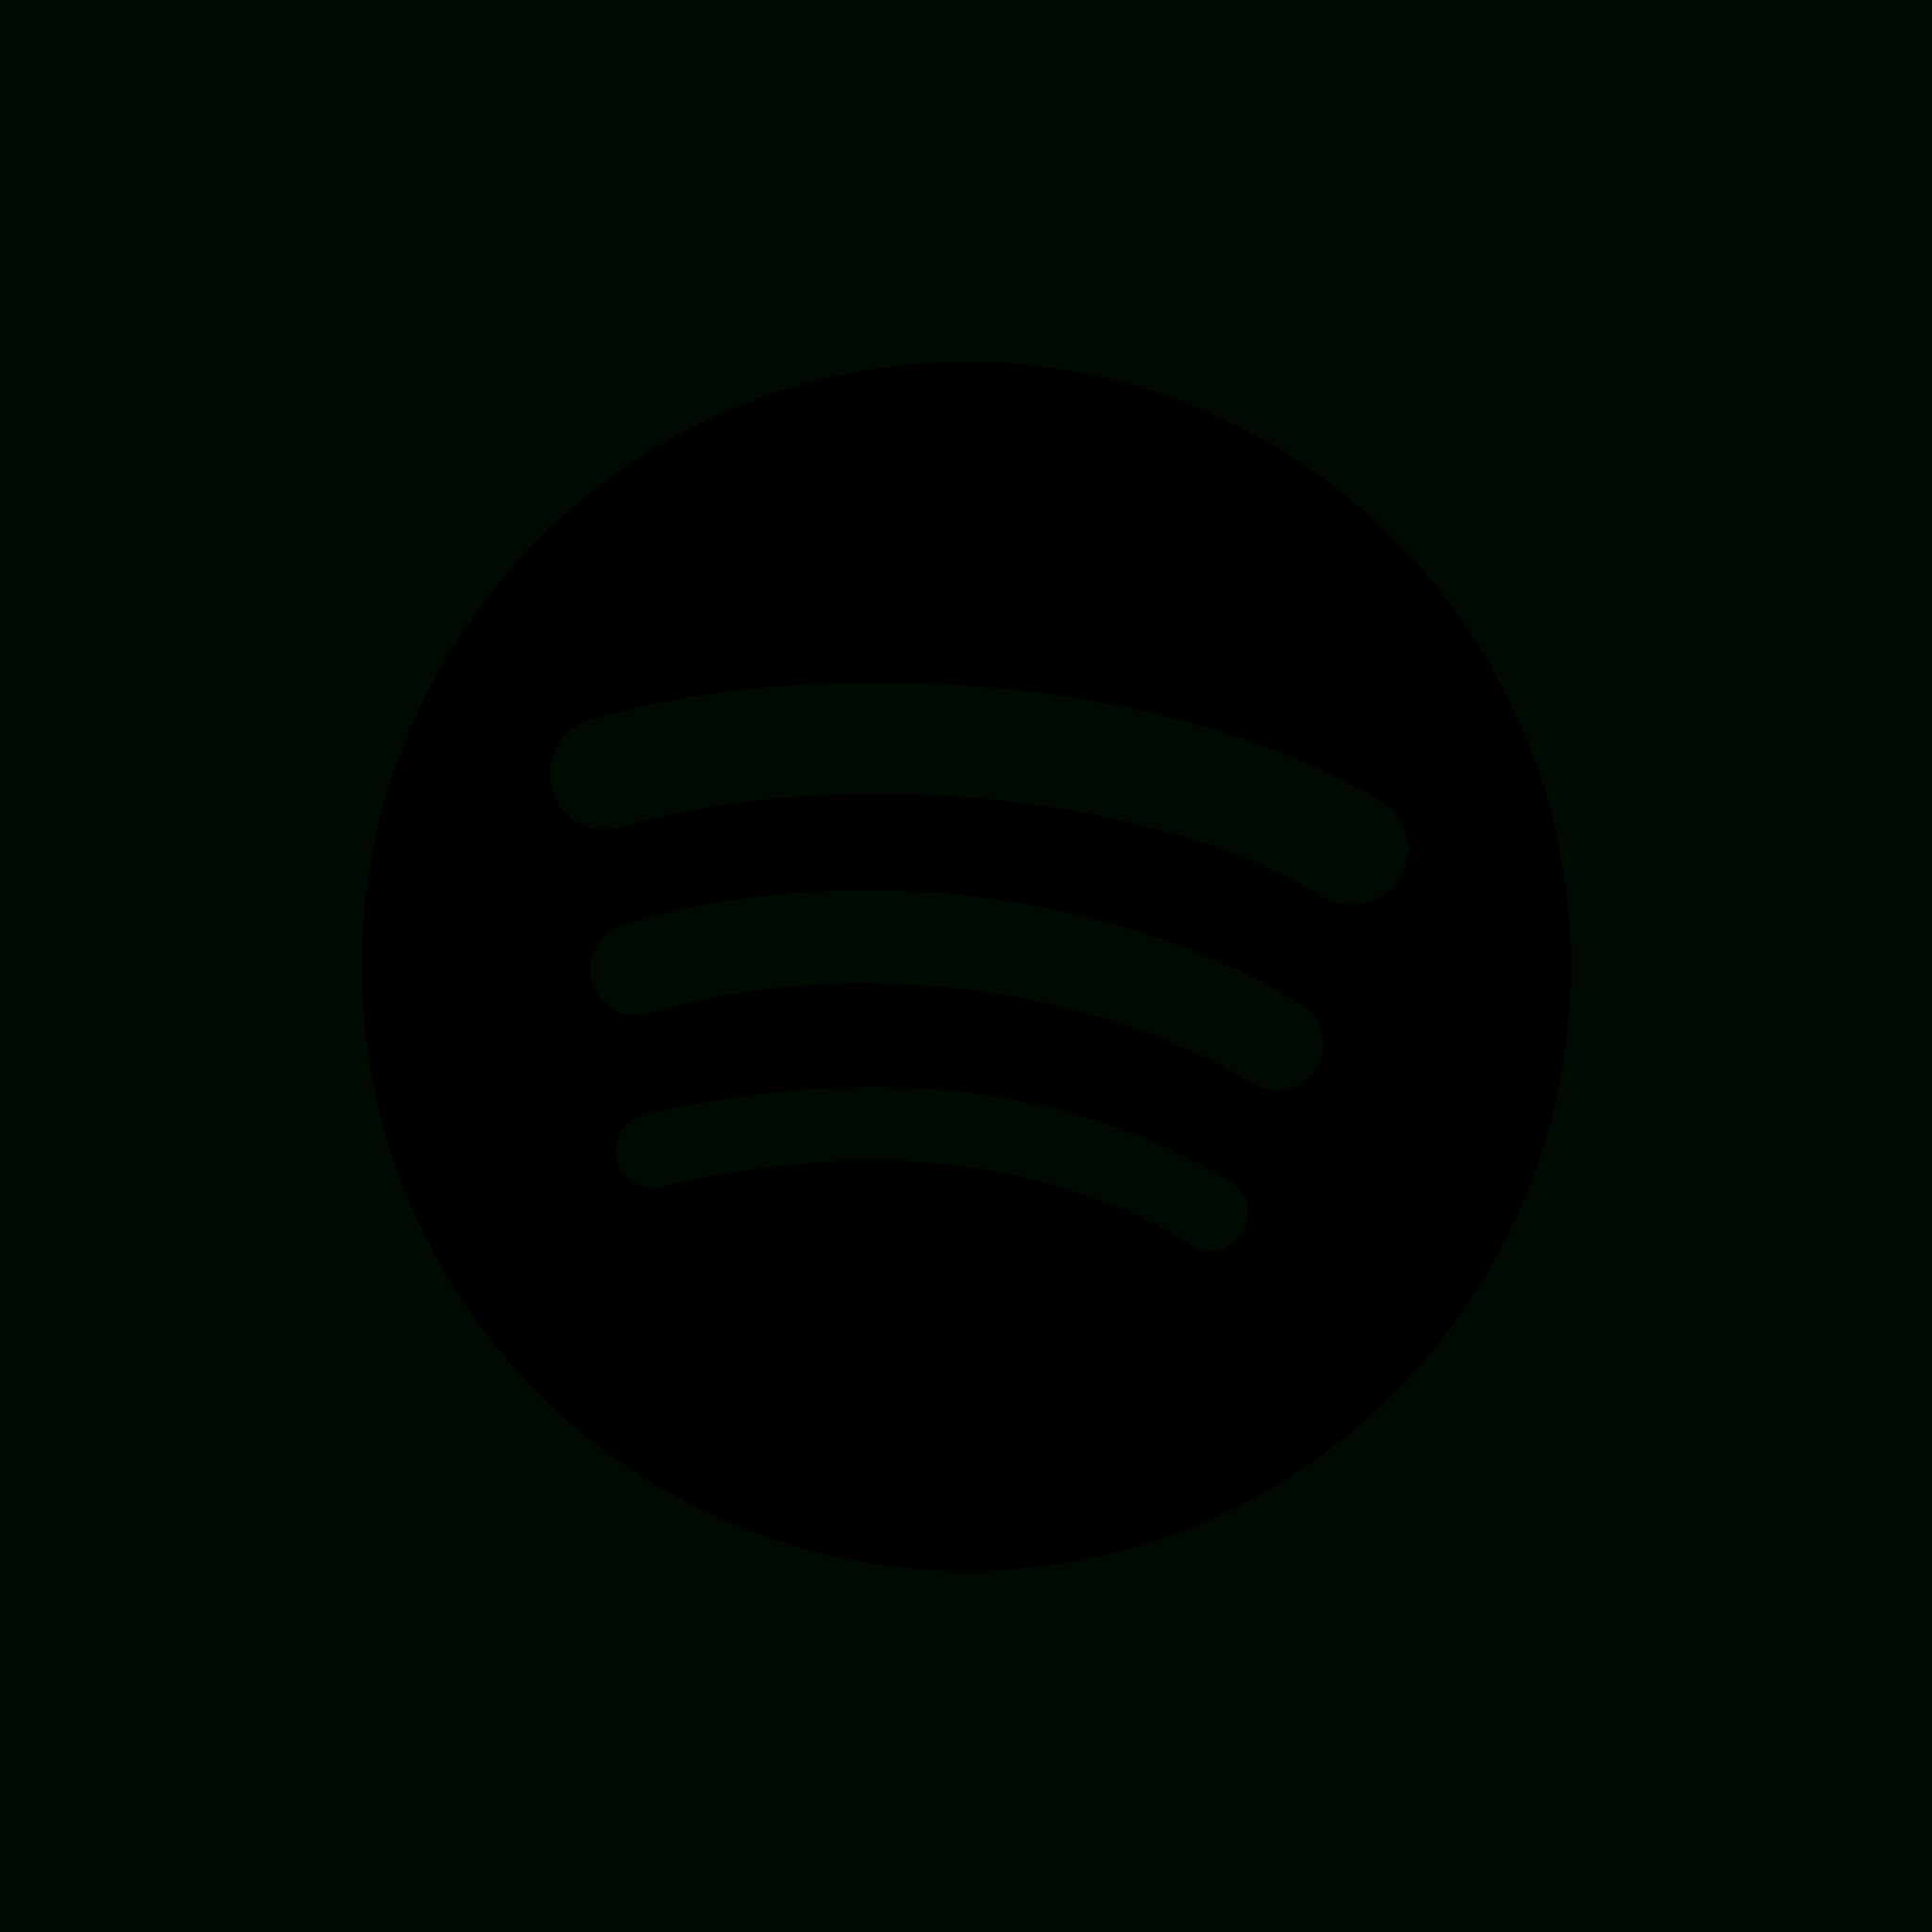 Spotify Icon Png, Spotify Icon Png Transparent Free For regarding Spotify Calendar Icon